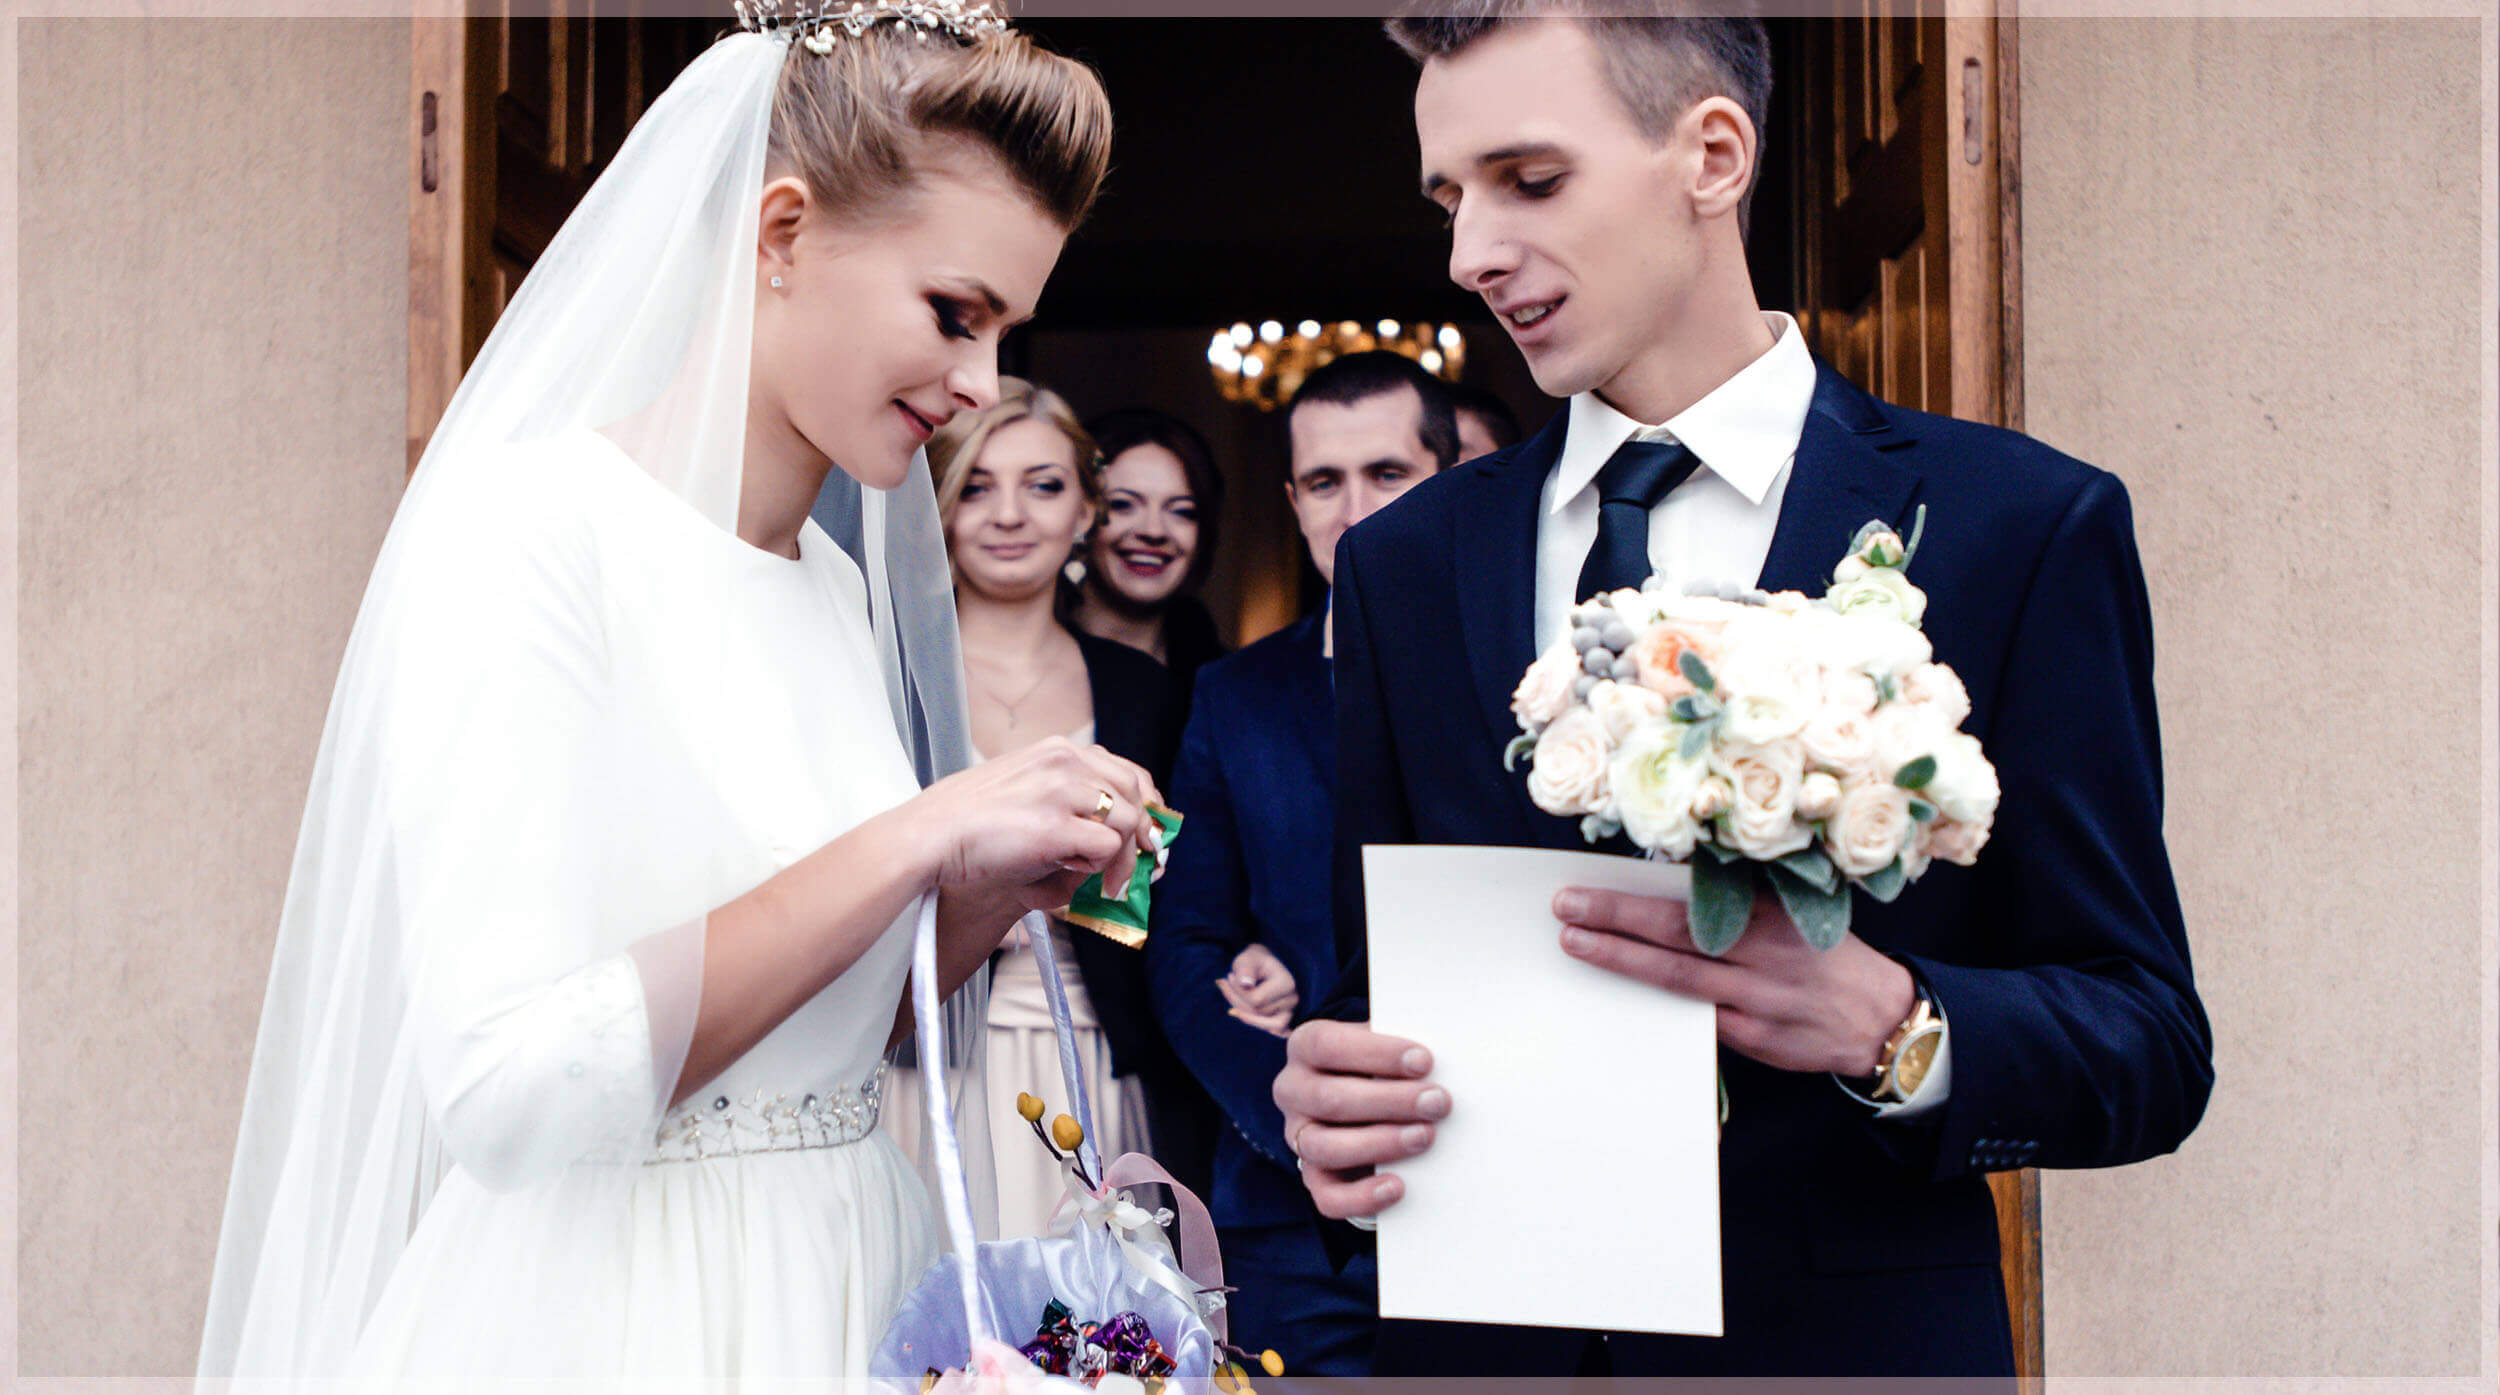 Diamonds and pictures are forever; Why are wedding pictures so important?